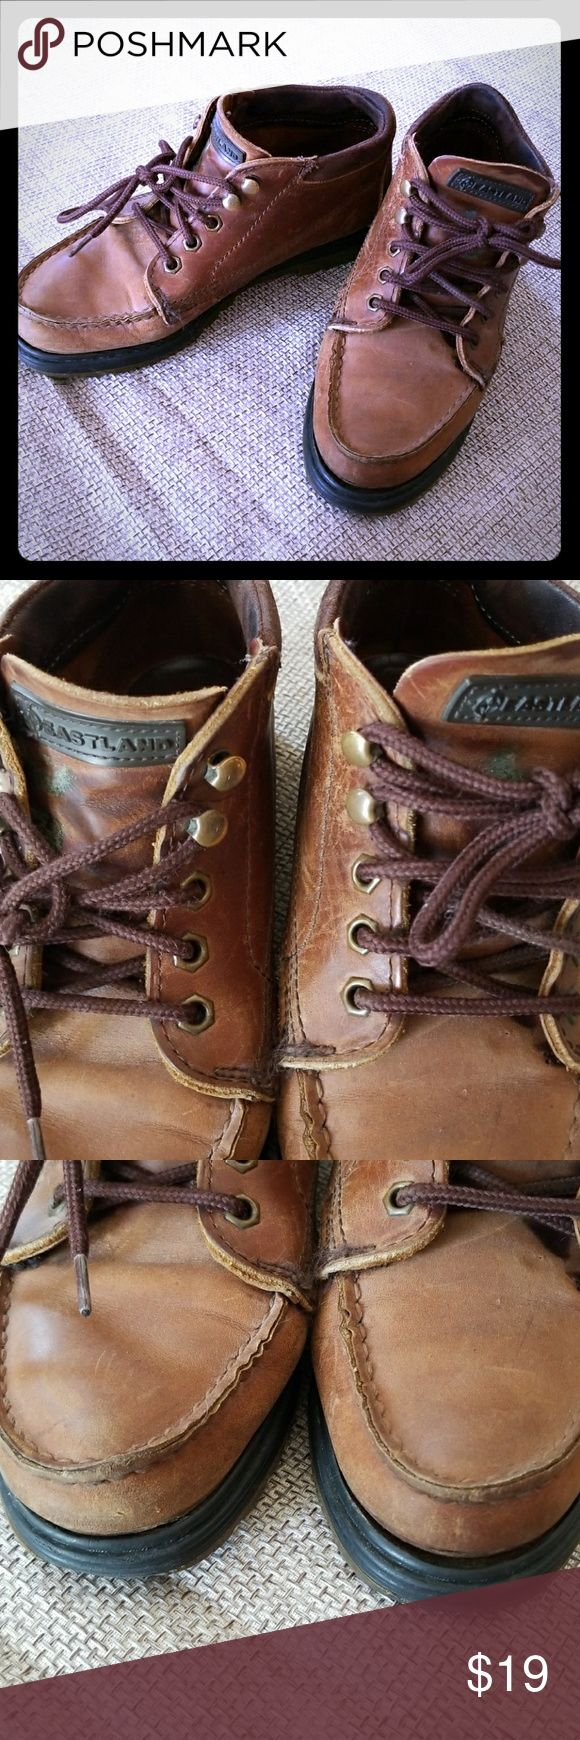 Women's size 8 Eastland brown leather Chukka boots Adorable hipster boots Eastland Shoes Lace Up Boots